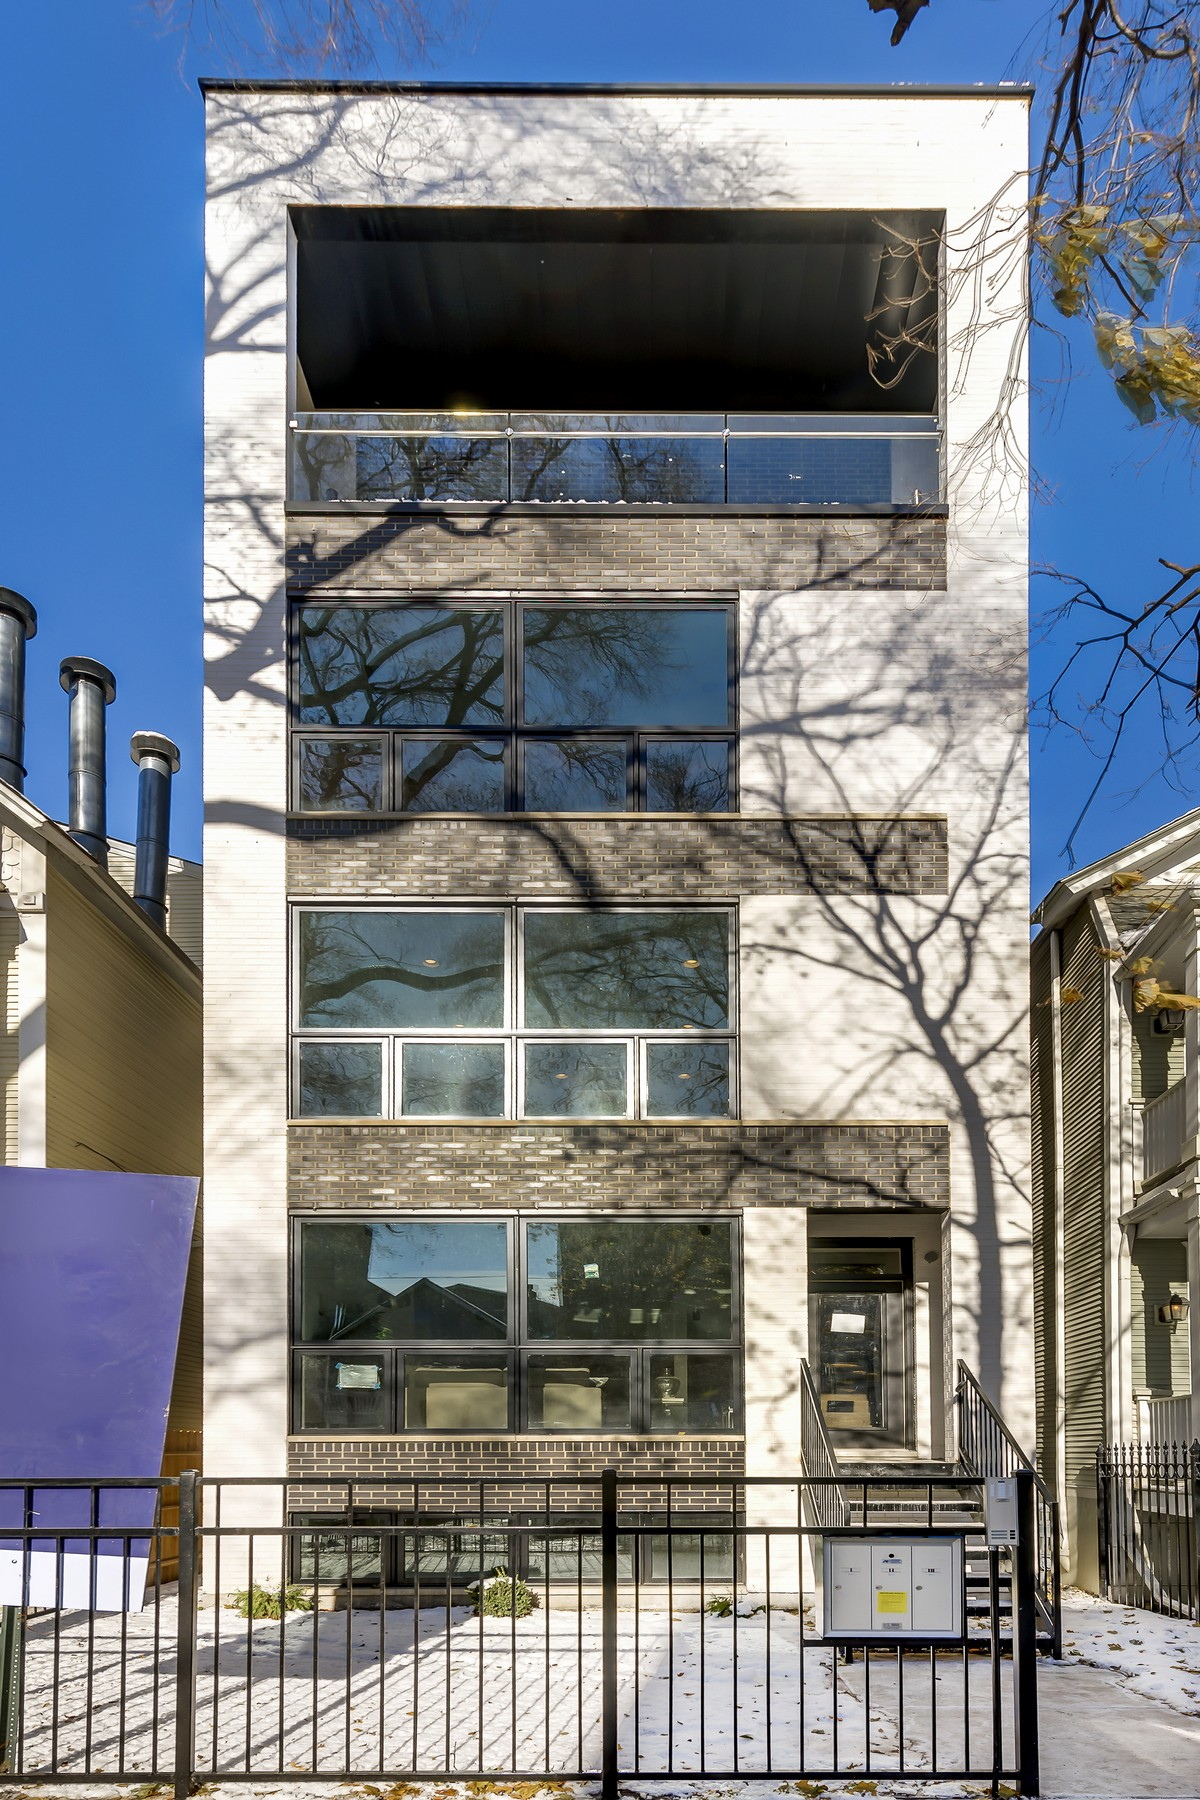 Duplex for Sale at Huge Roscoe Village Duplex Down by JB Homes! 1751 W Roscoe Street Unit 1 North Center, Chicago, Illinois, 60657 United States